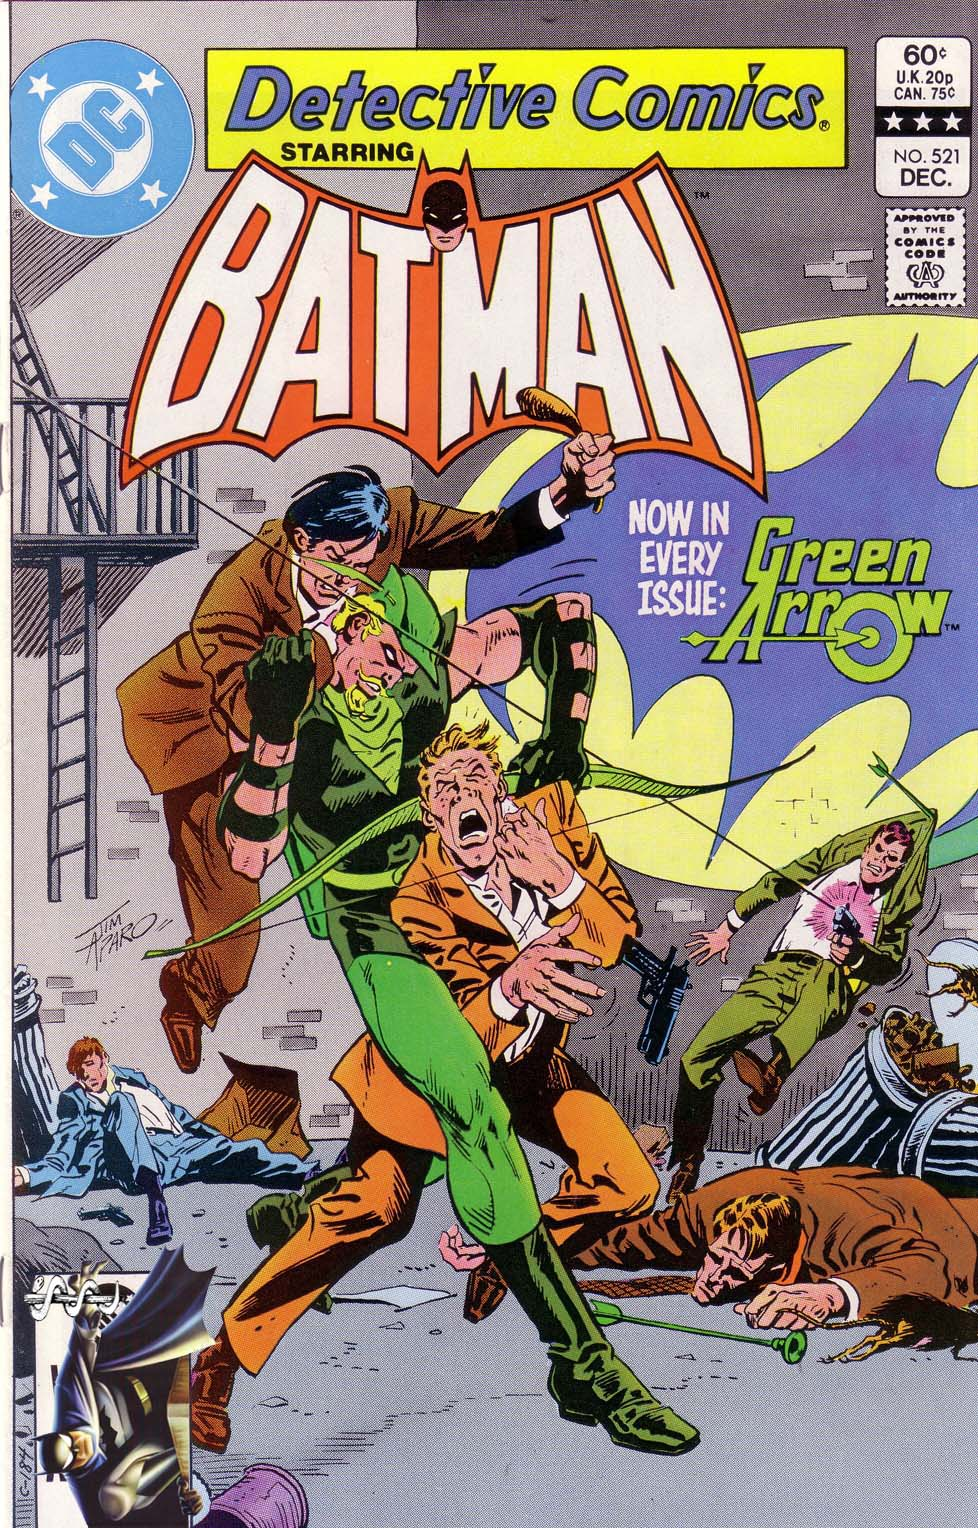 Detective Comics (1937) Issue #521 Page 1